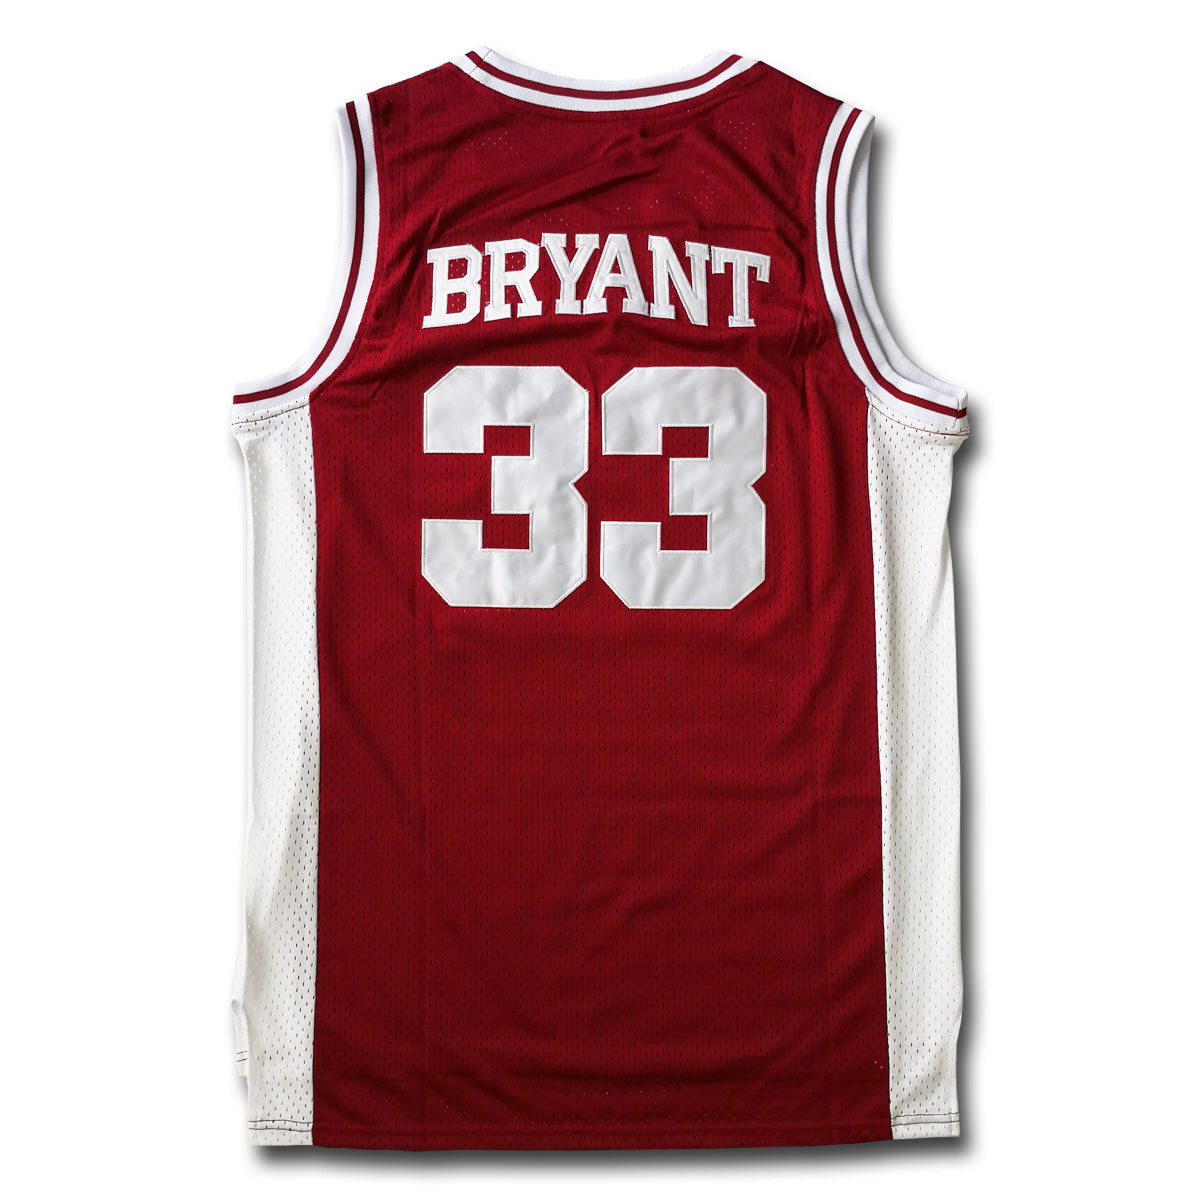 18dab0f9295 Bryant #33 Lower Merion Red Basketball Jersey